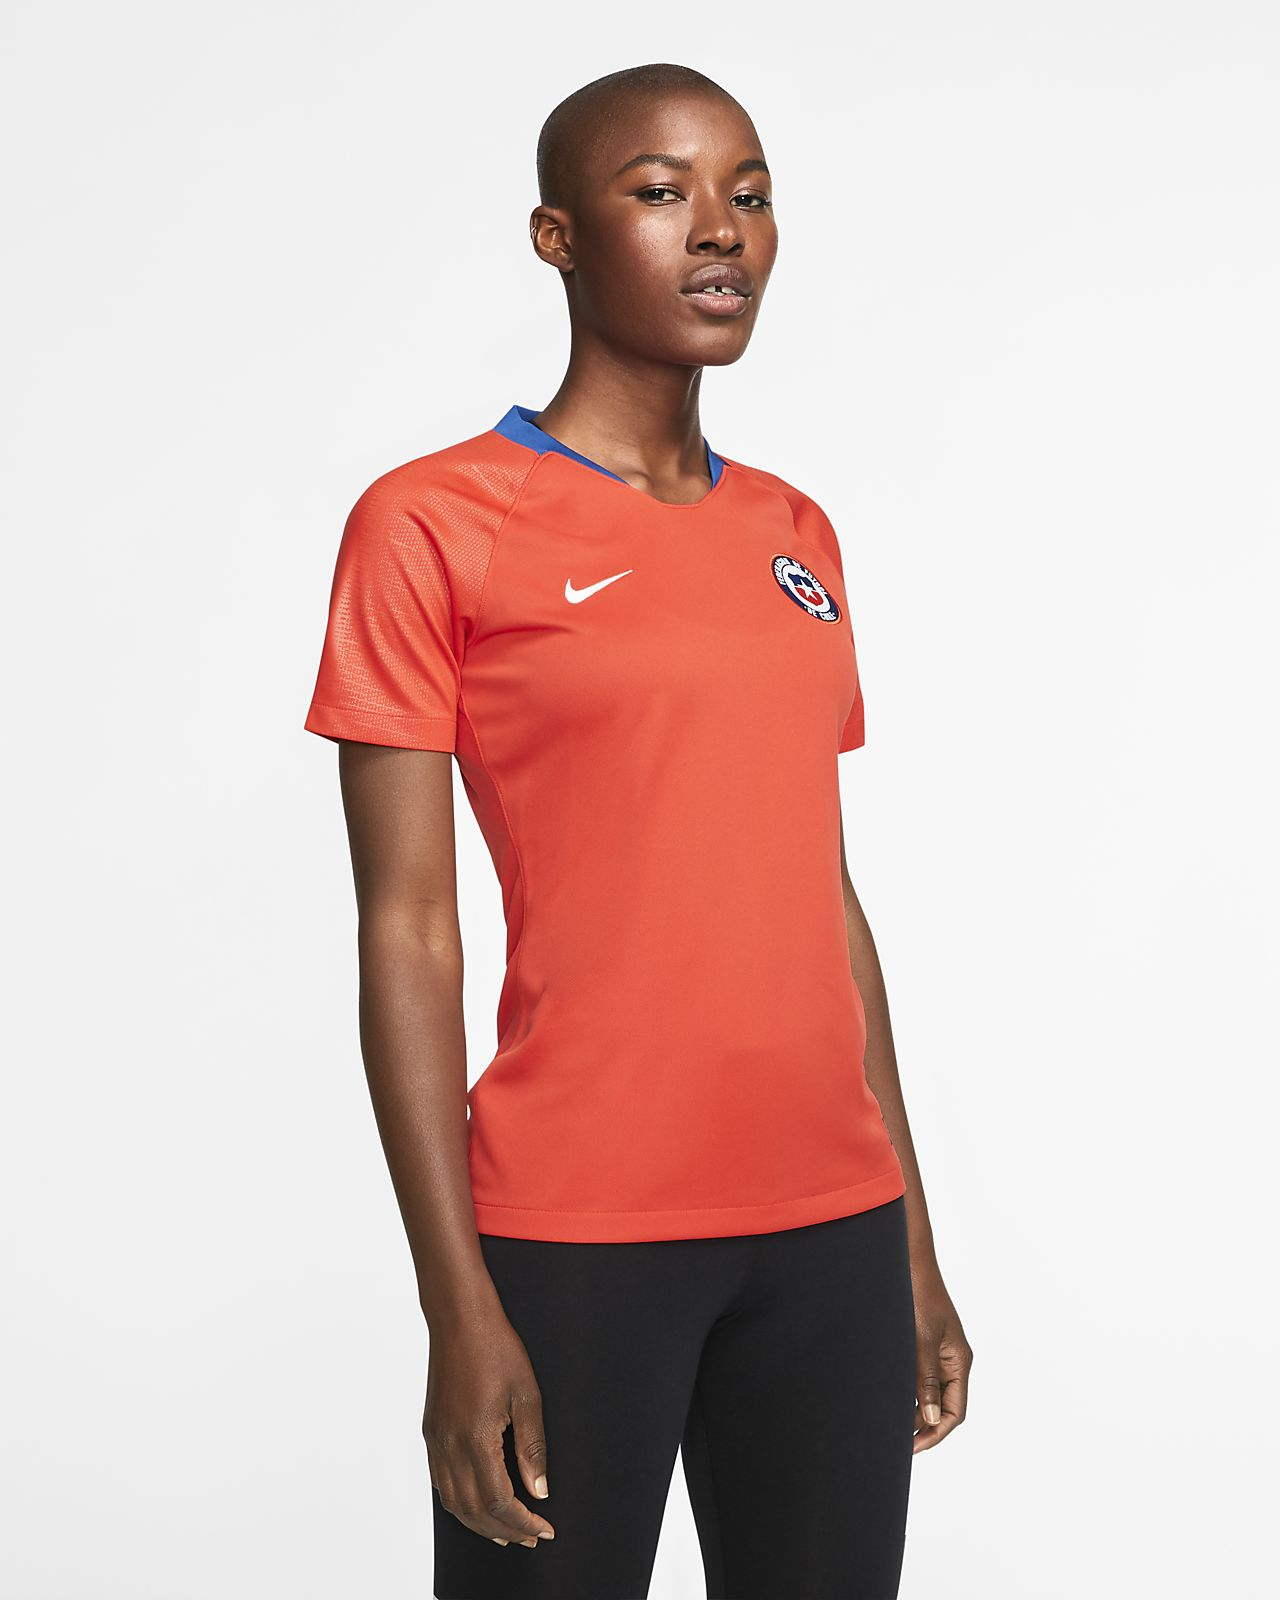 Chile 2019 Stadium Home Women's Football Shirt